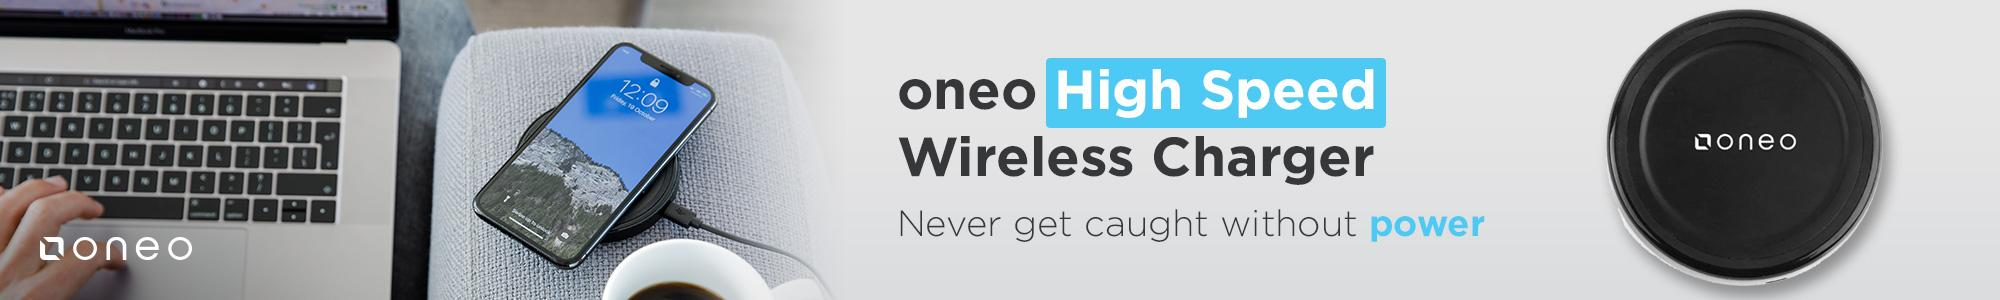 oneo High Speed Wireless Charger! Never get caught without power